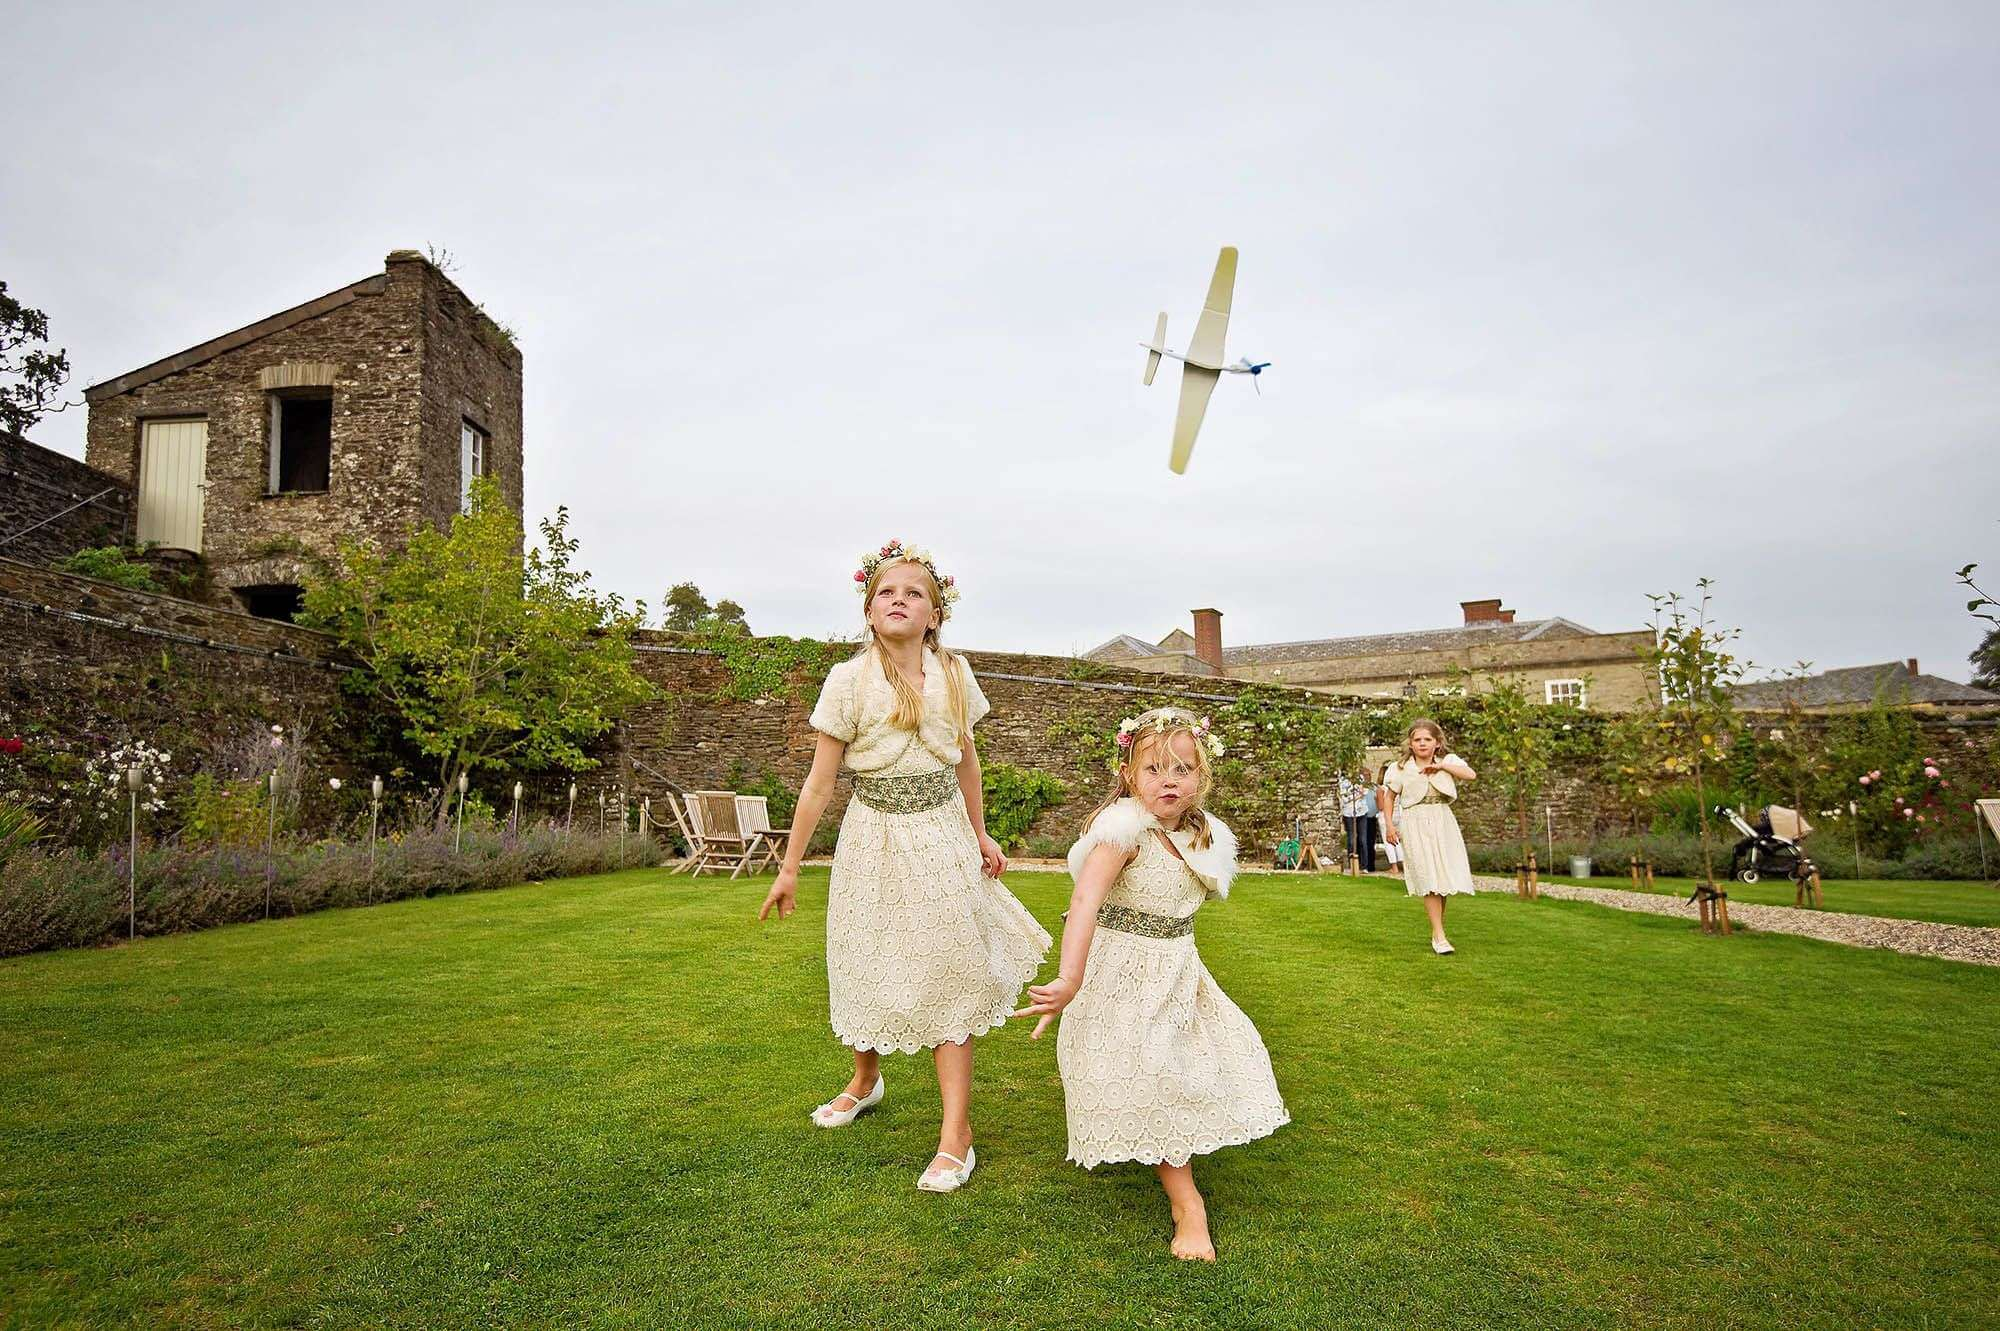 Cheeky flowergirls at Shilstone House throwing model planes